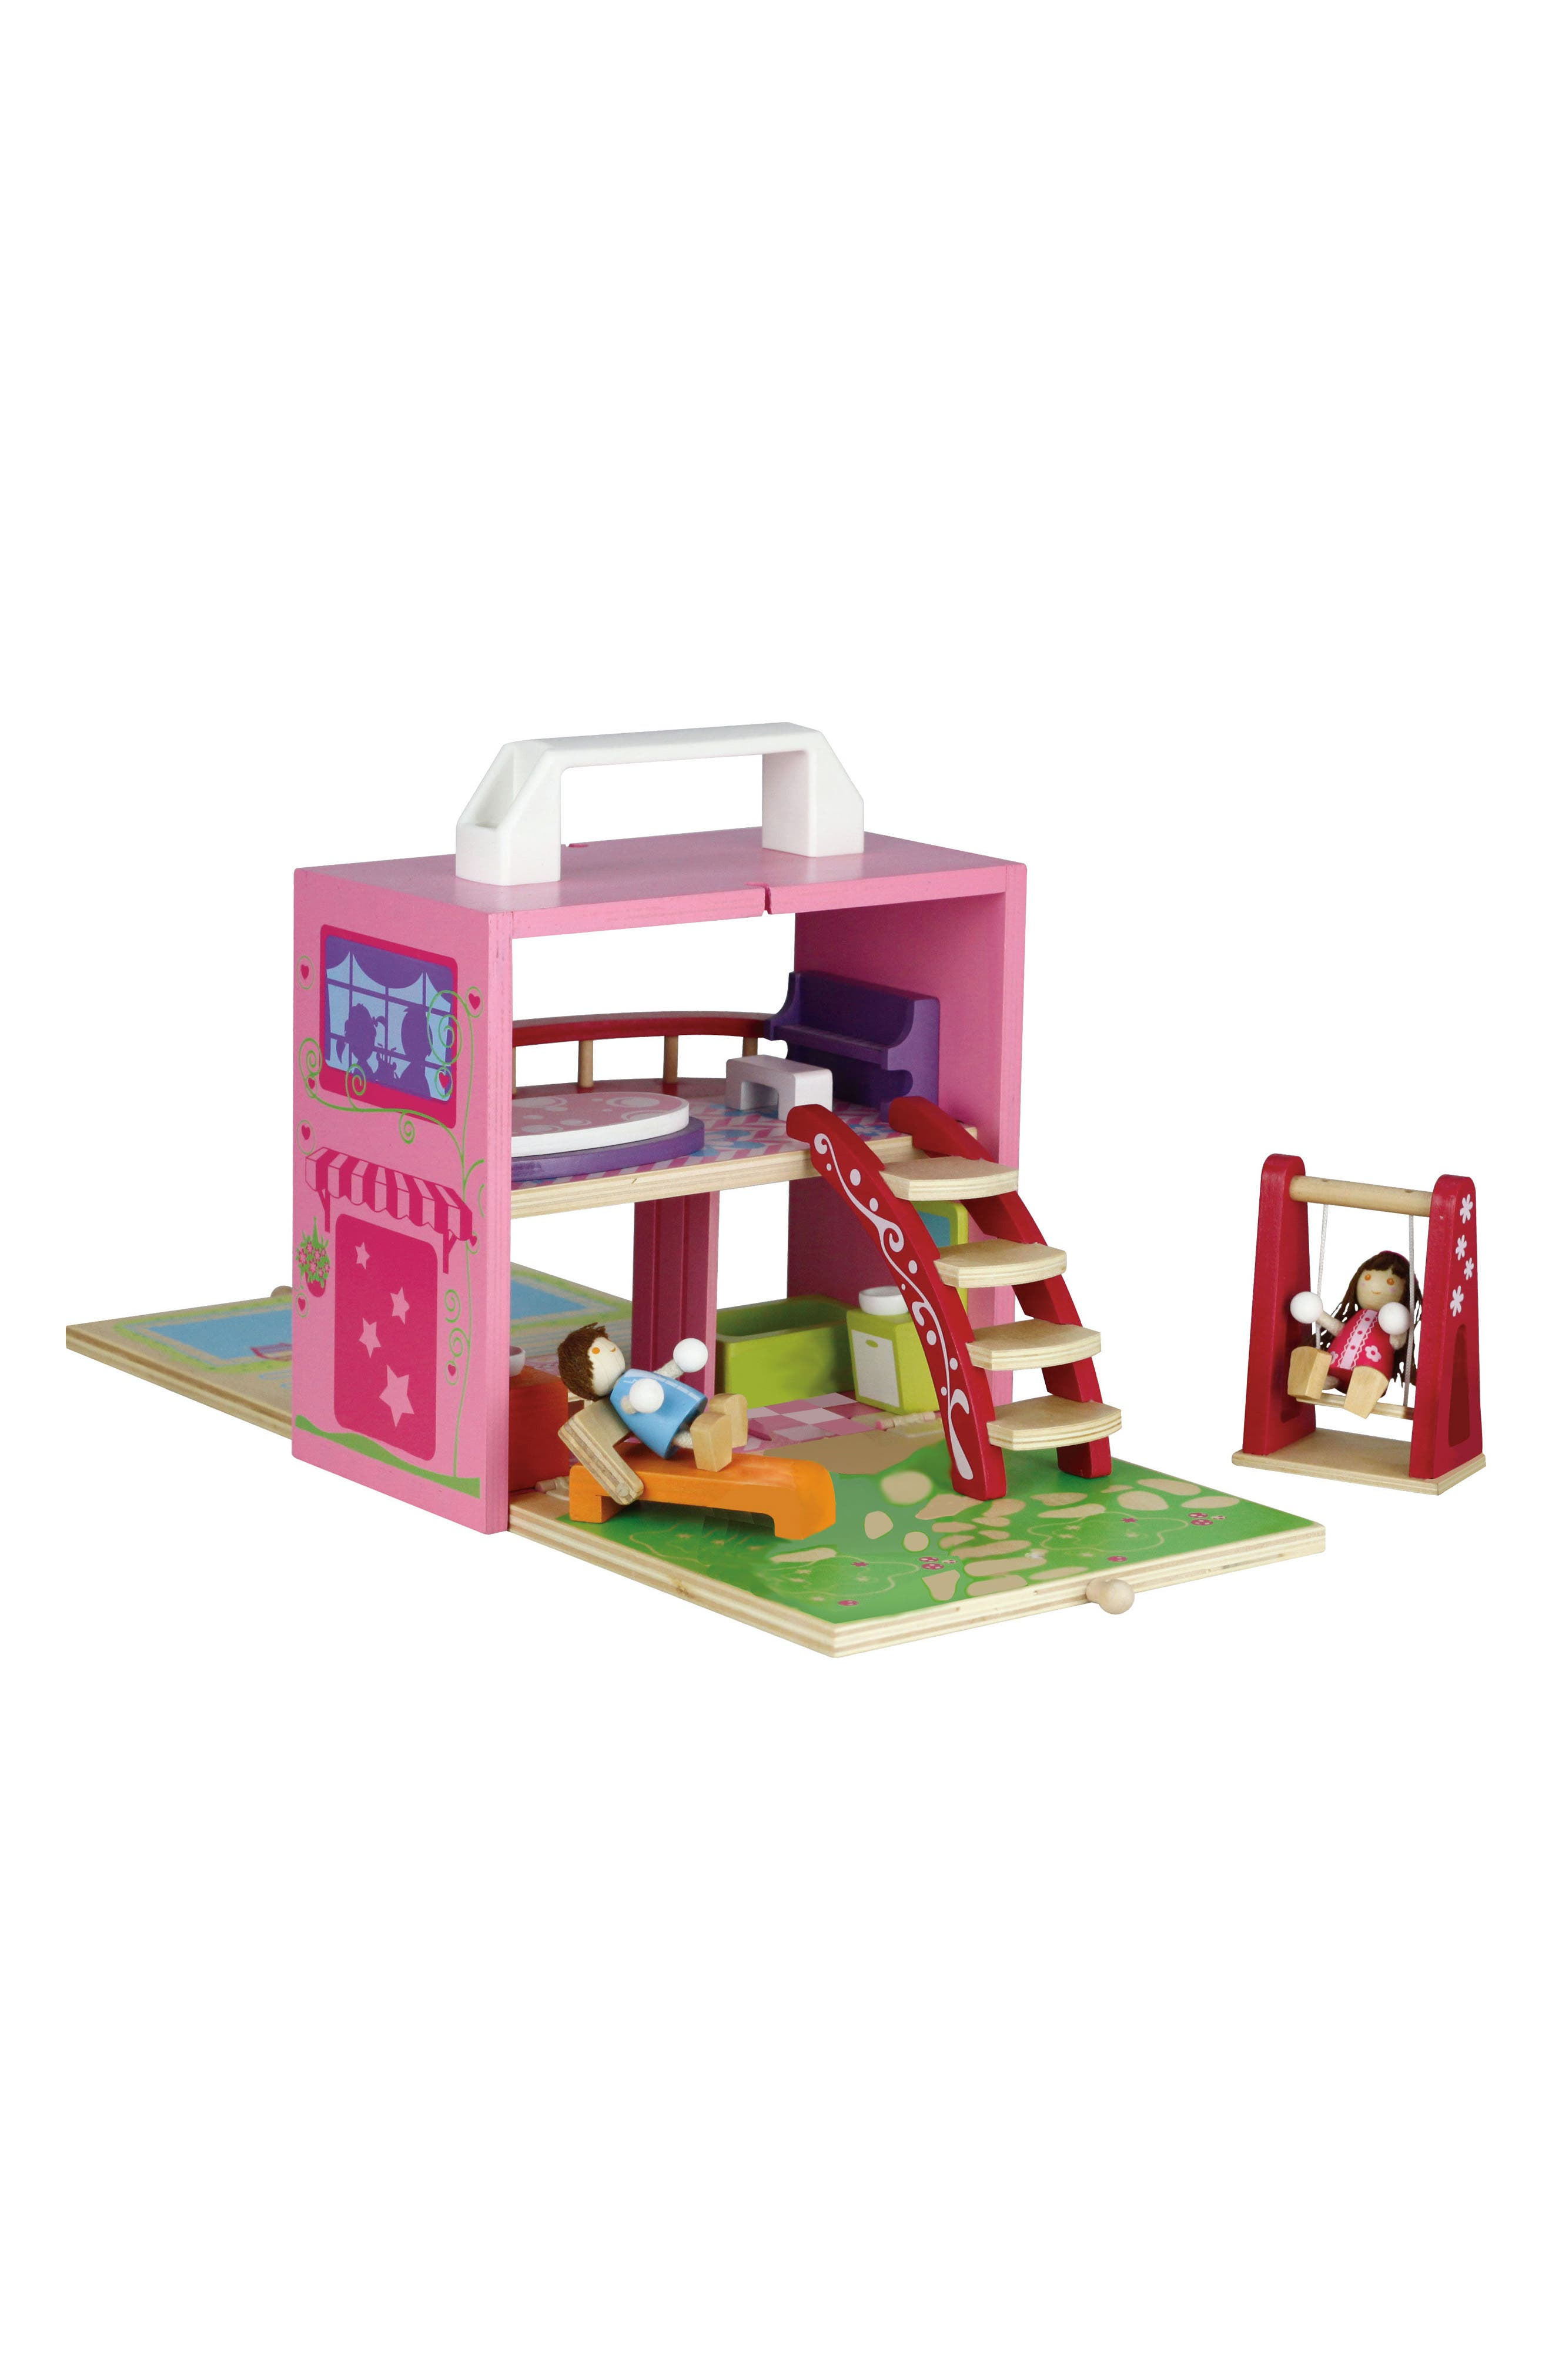 13-Piece Wooden Dollhouse Box Set,                         Main,                         color, 650